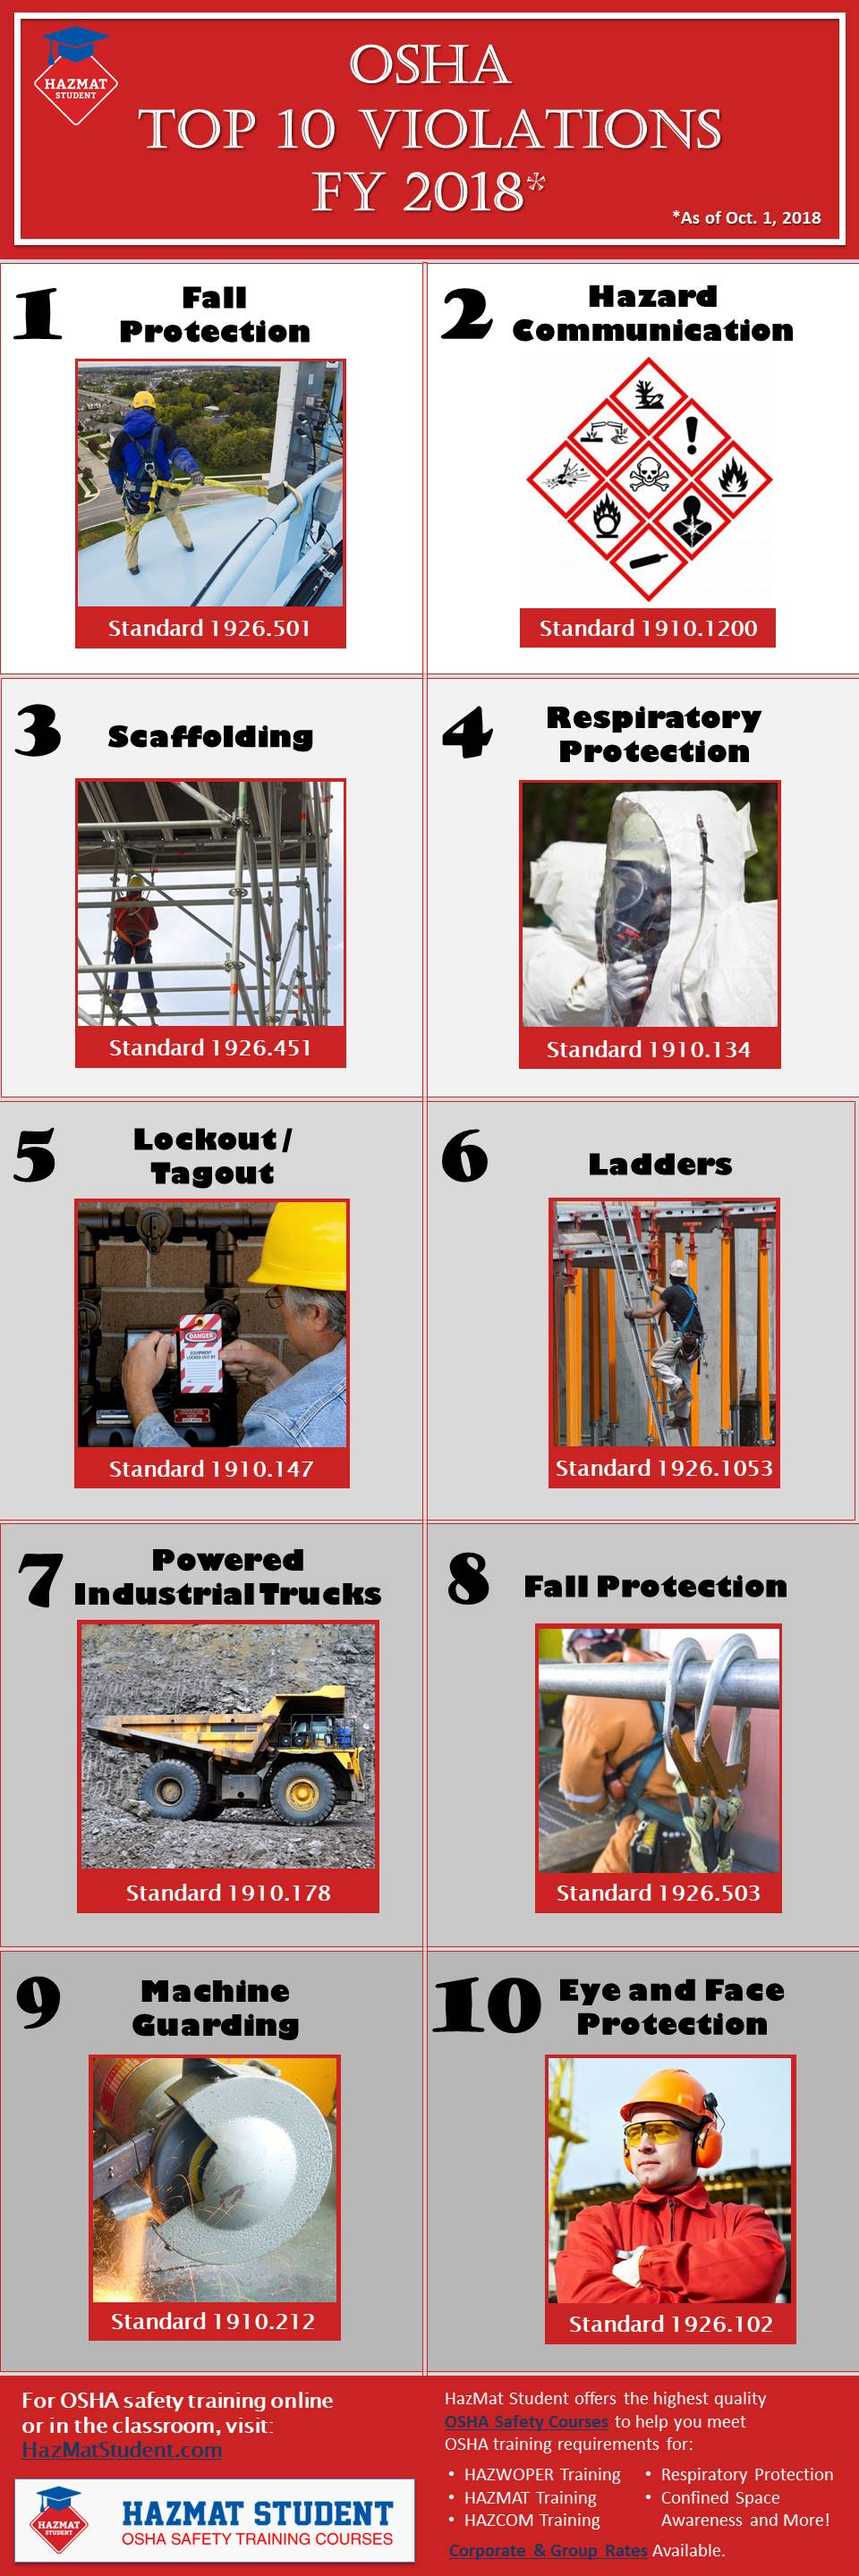 top ten osha violations infographic